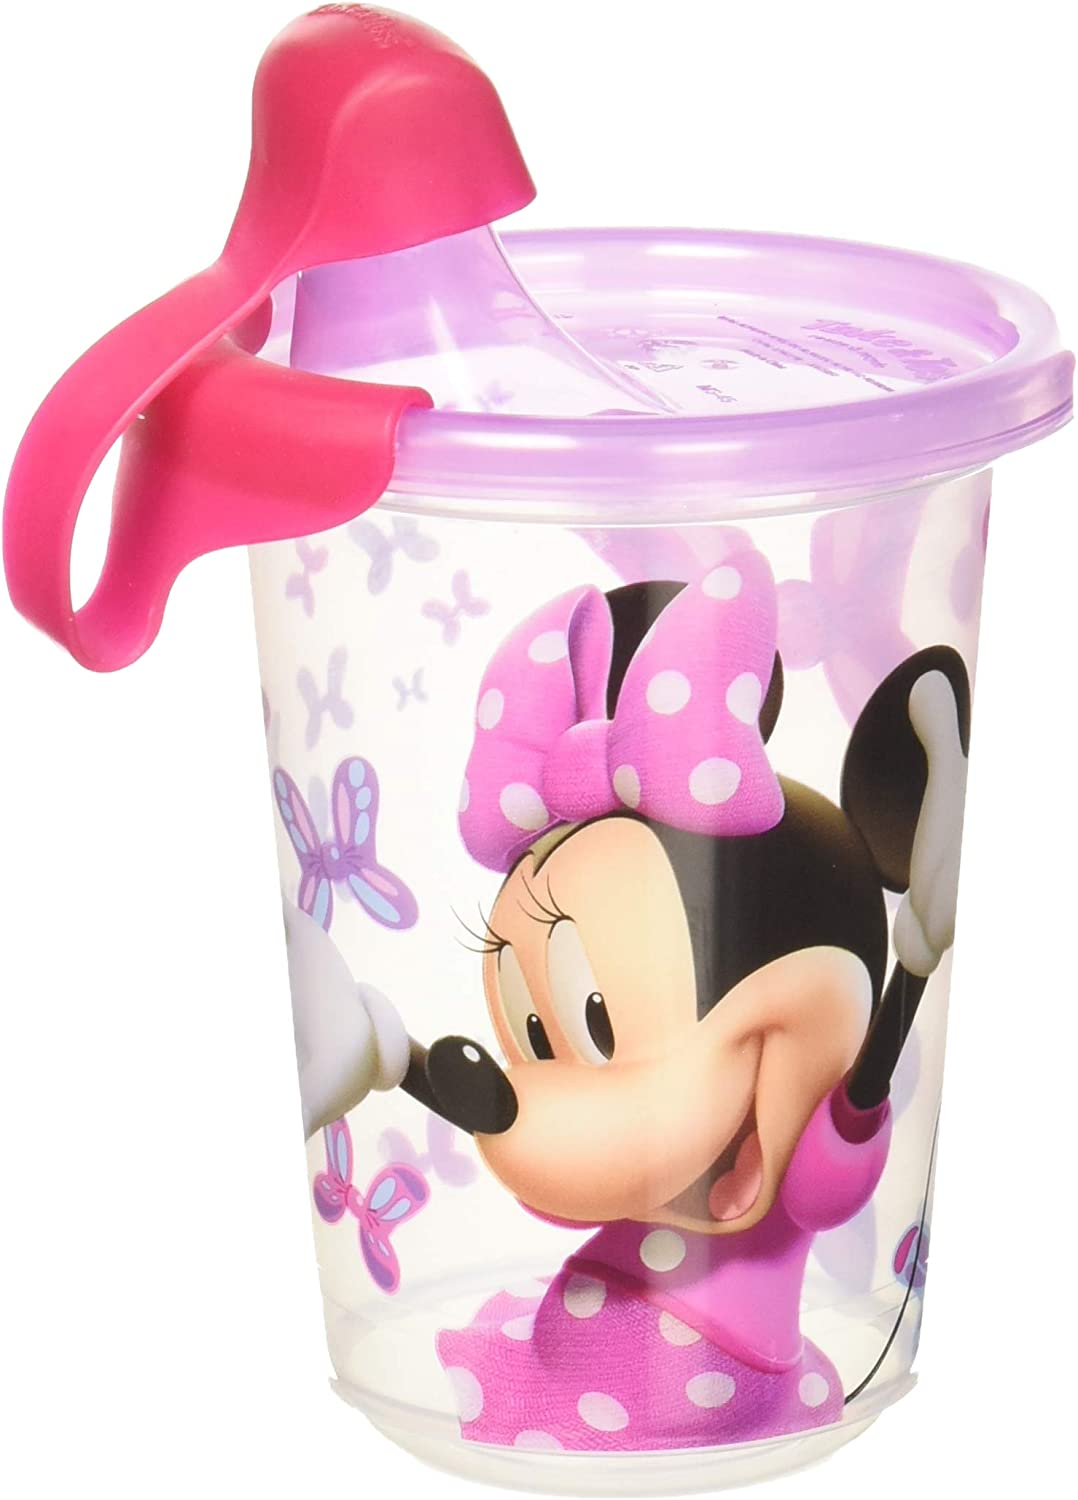 3-Pack The First Years Y9014A6 Disney Princess Take and Toss Sippy Cup